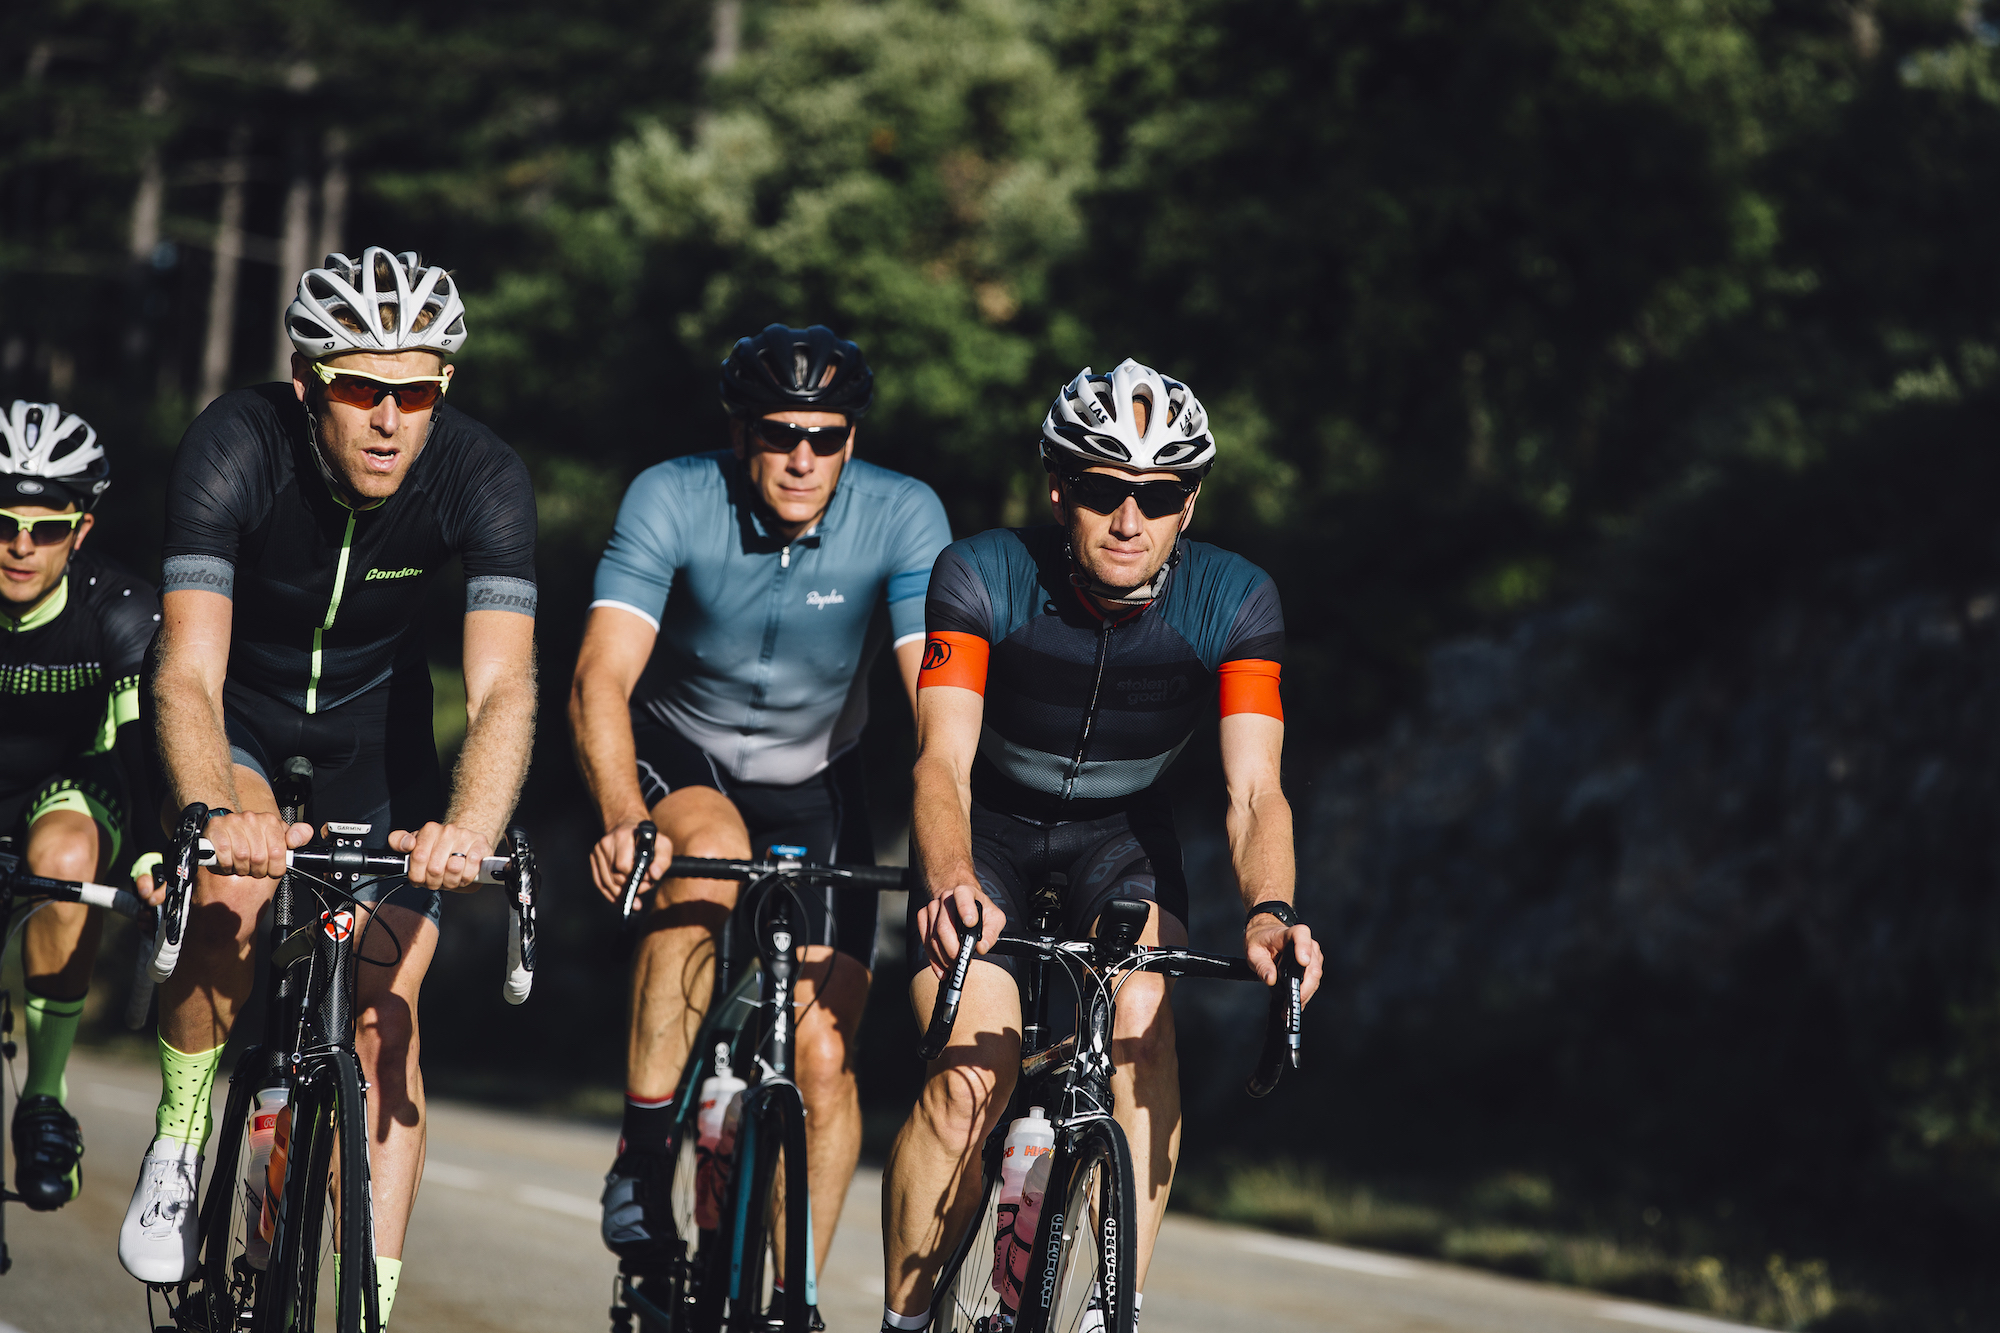 How to cycle in a group: Essential guide to group cycling